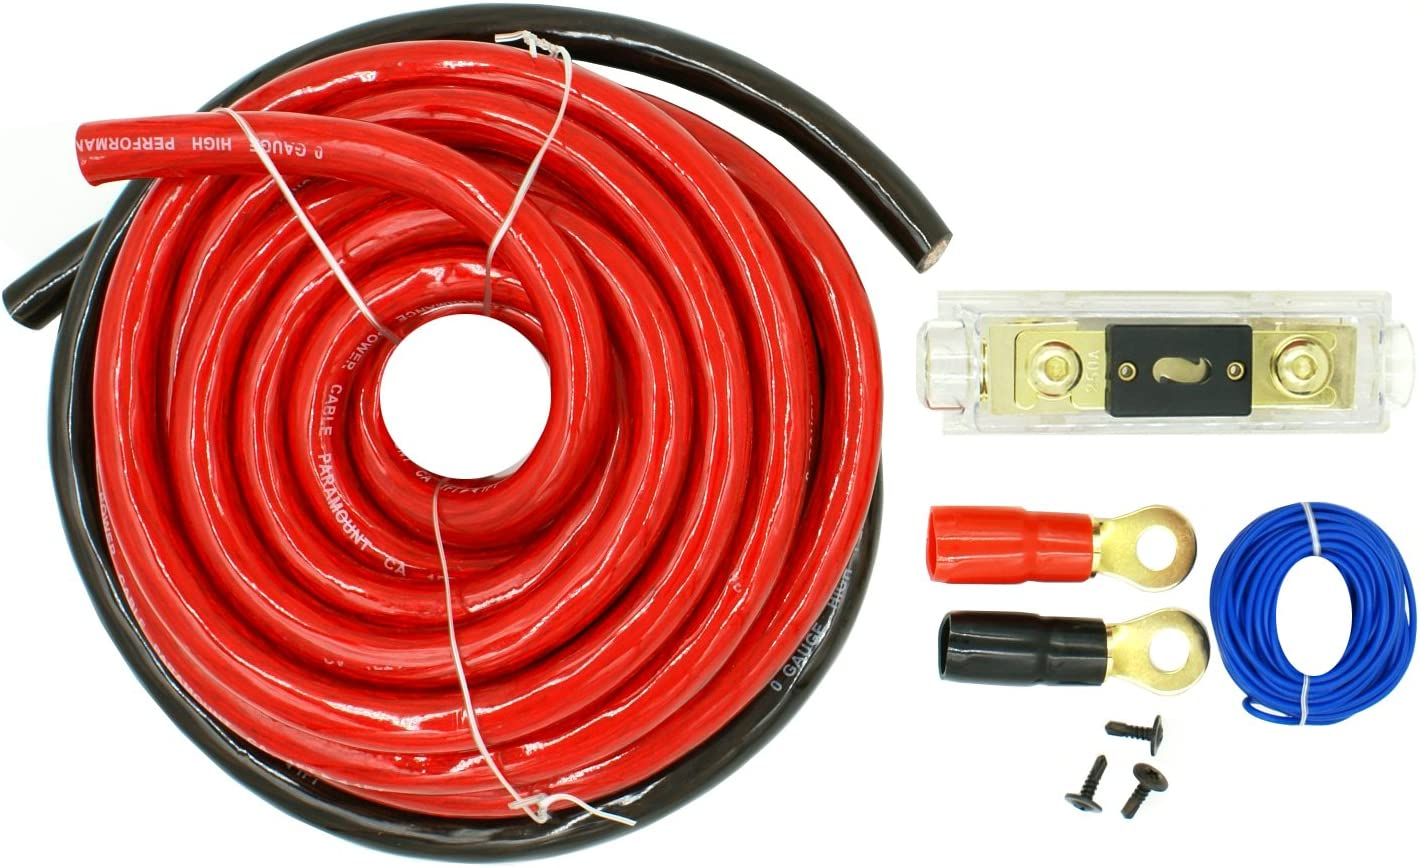 Premium Oxygen Free Copper DNF 8 Gauge 250 Feet Red Power Cable 100/% OFC